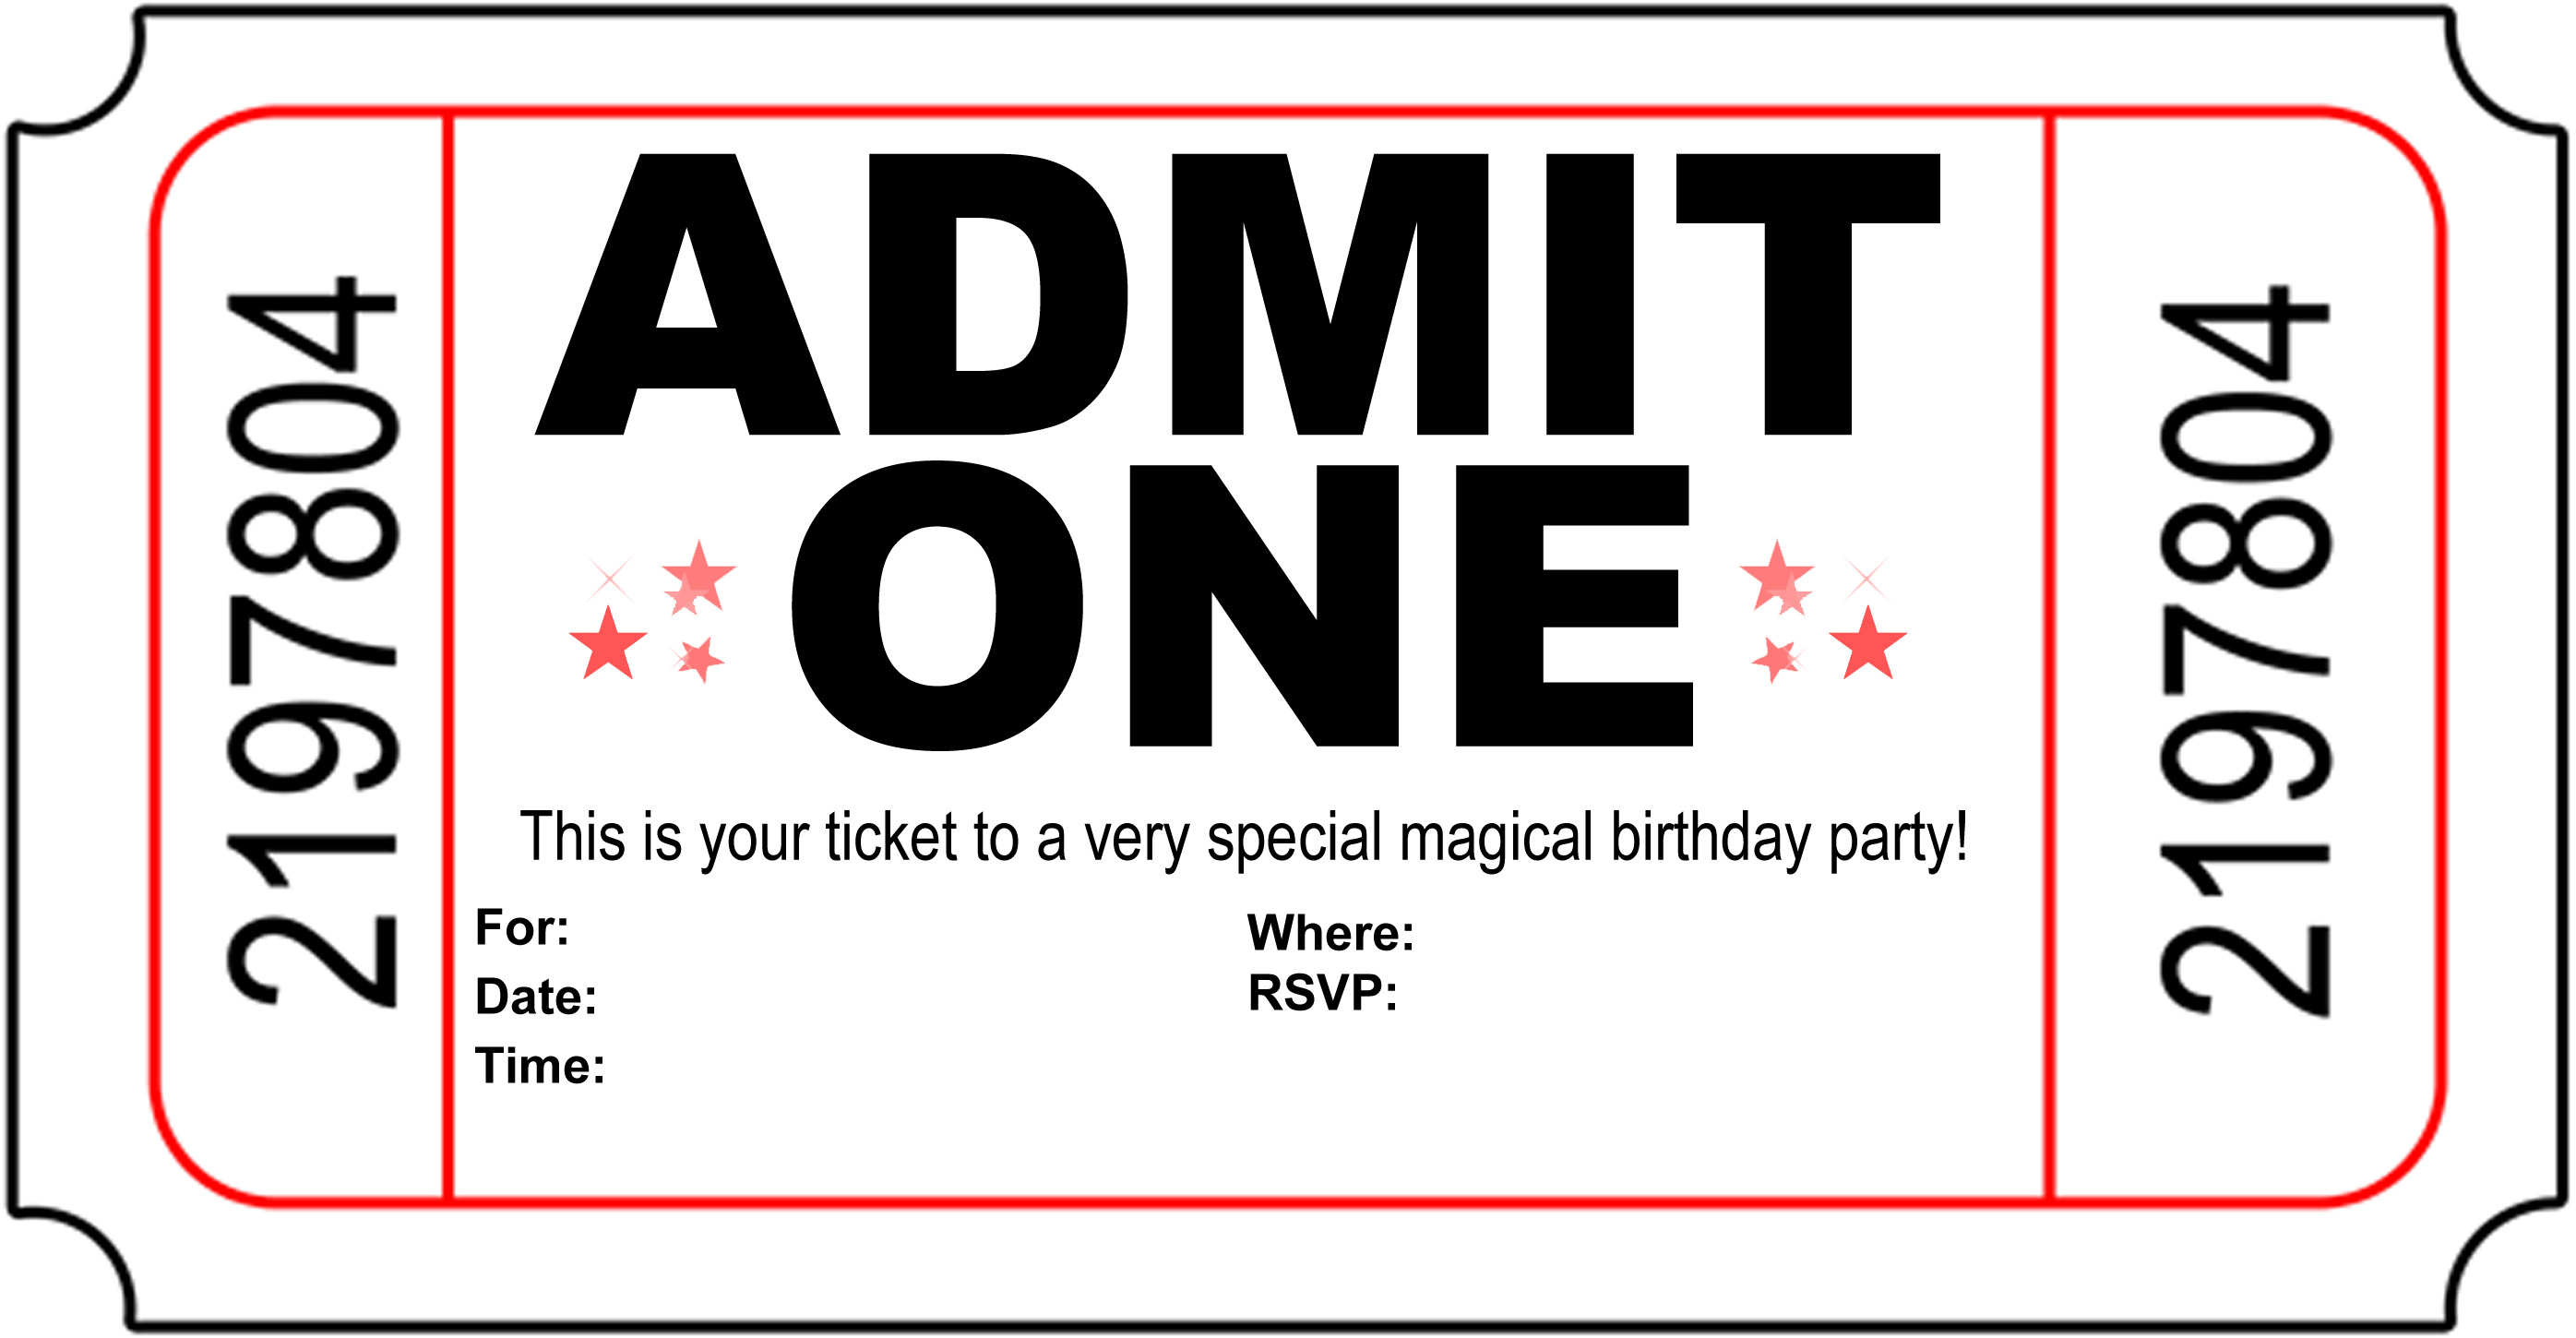 printable birthday invitation paper ; printable-magic-show-ticket-invitation